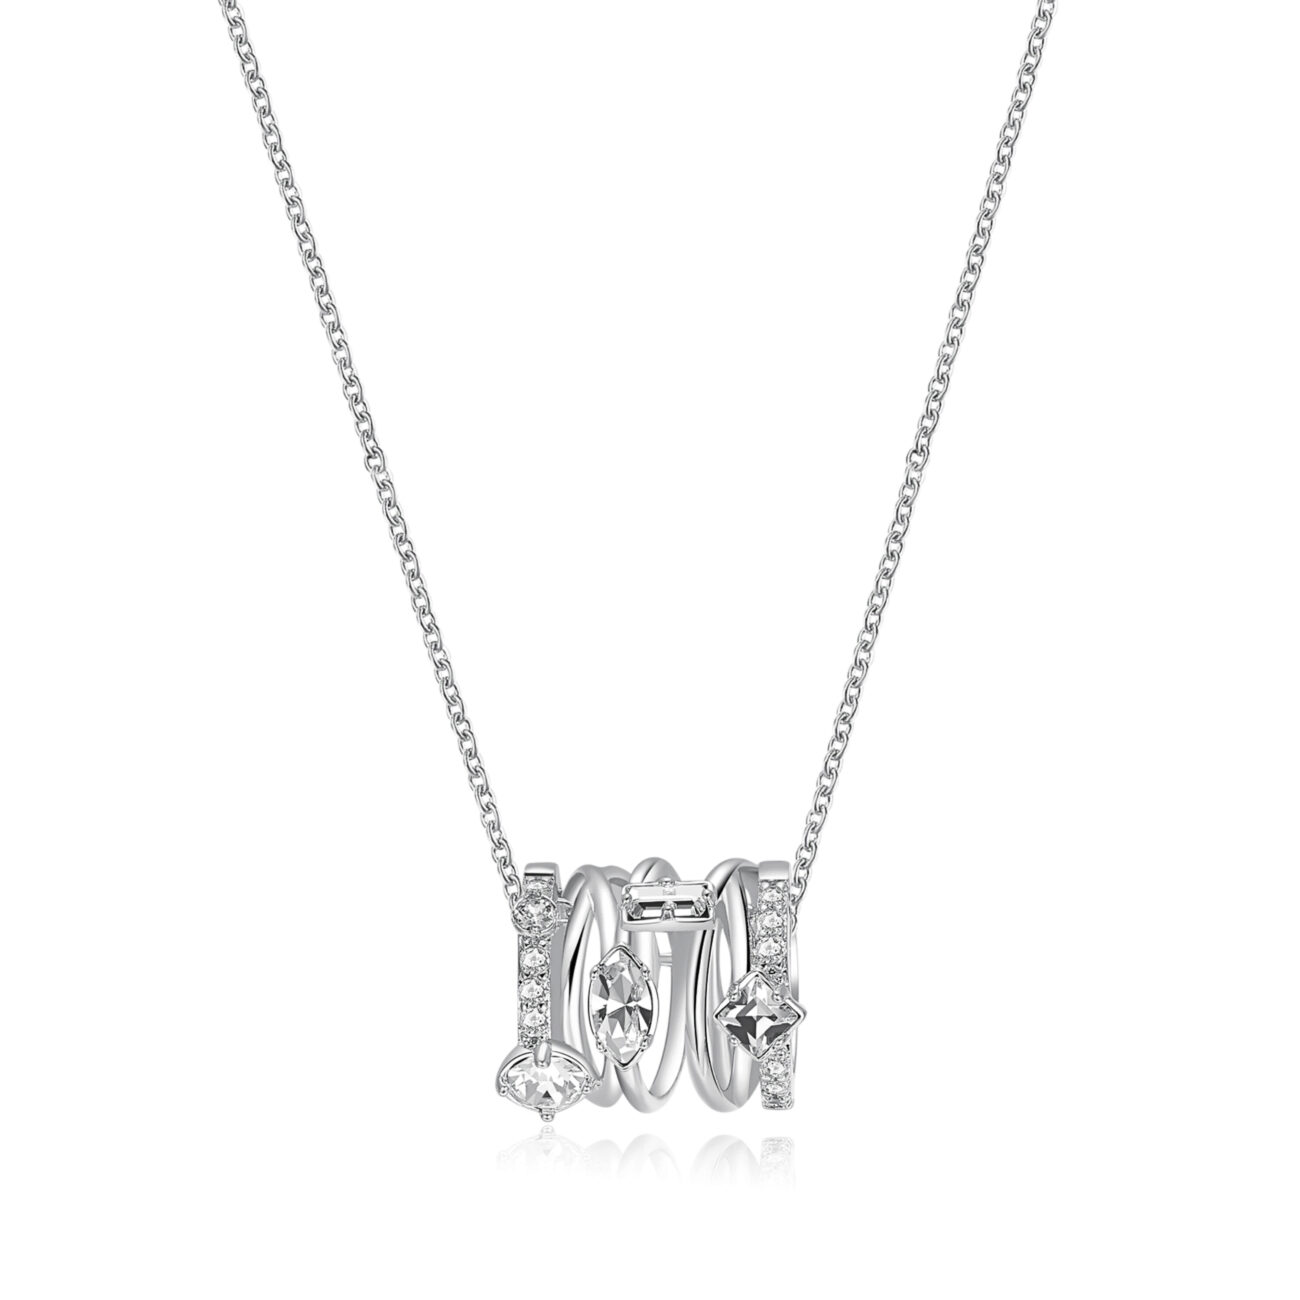 Rhodiated brass necklace with white zircons and crystal Swarovski©crystals.